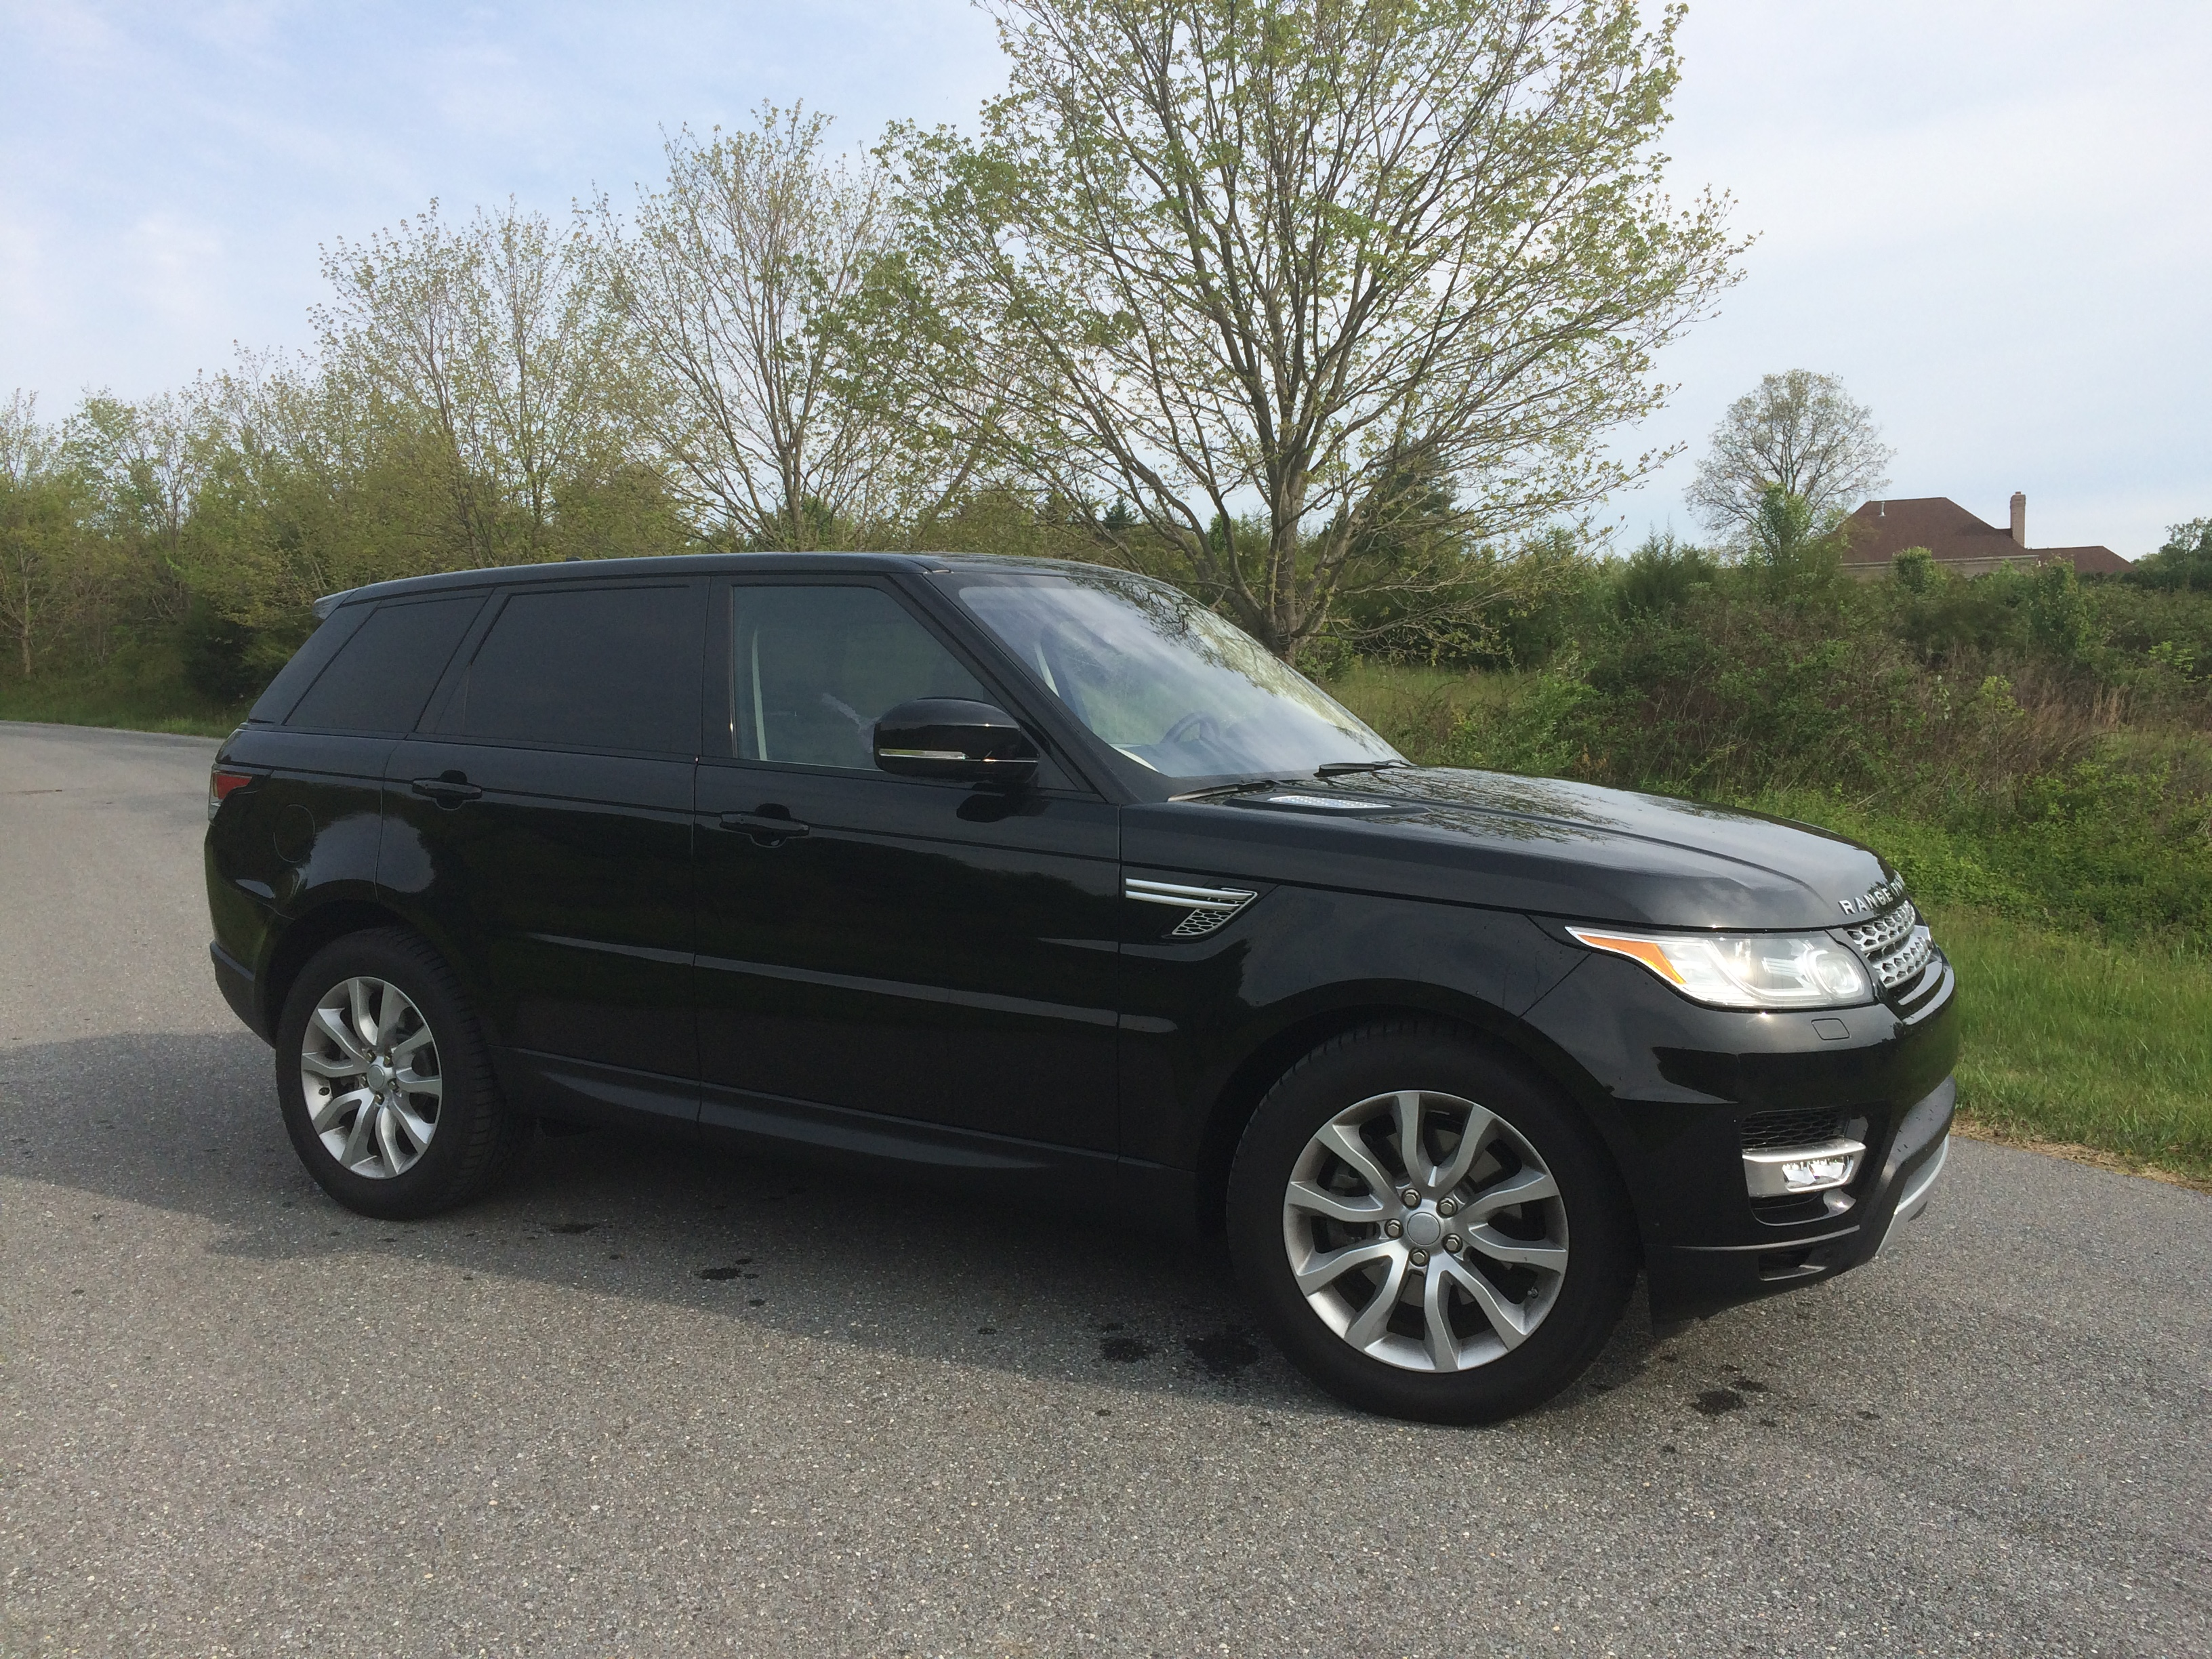 Range Rover Sport HSE Td6 A luxury SUV with good MPG for a price